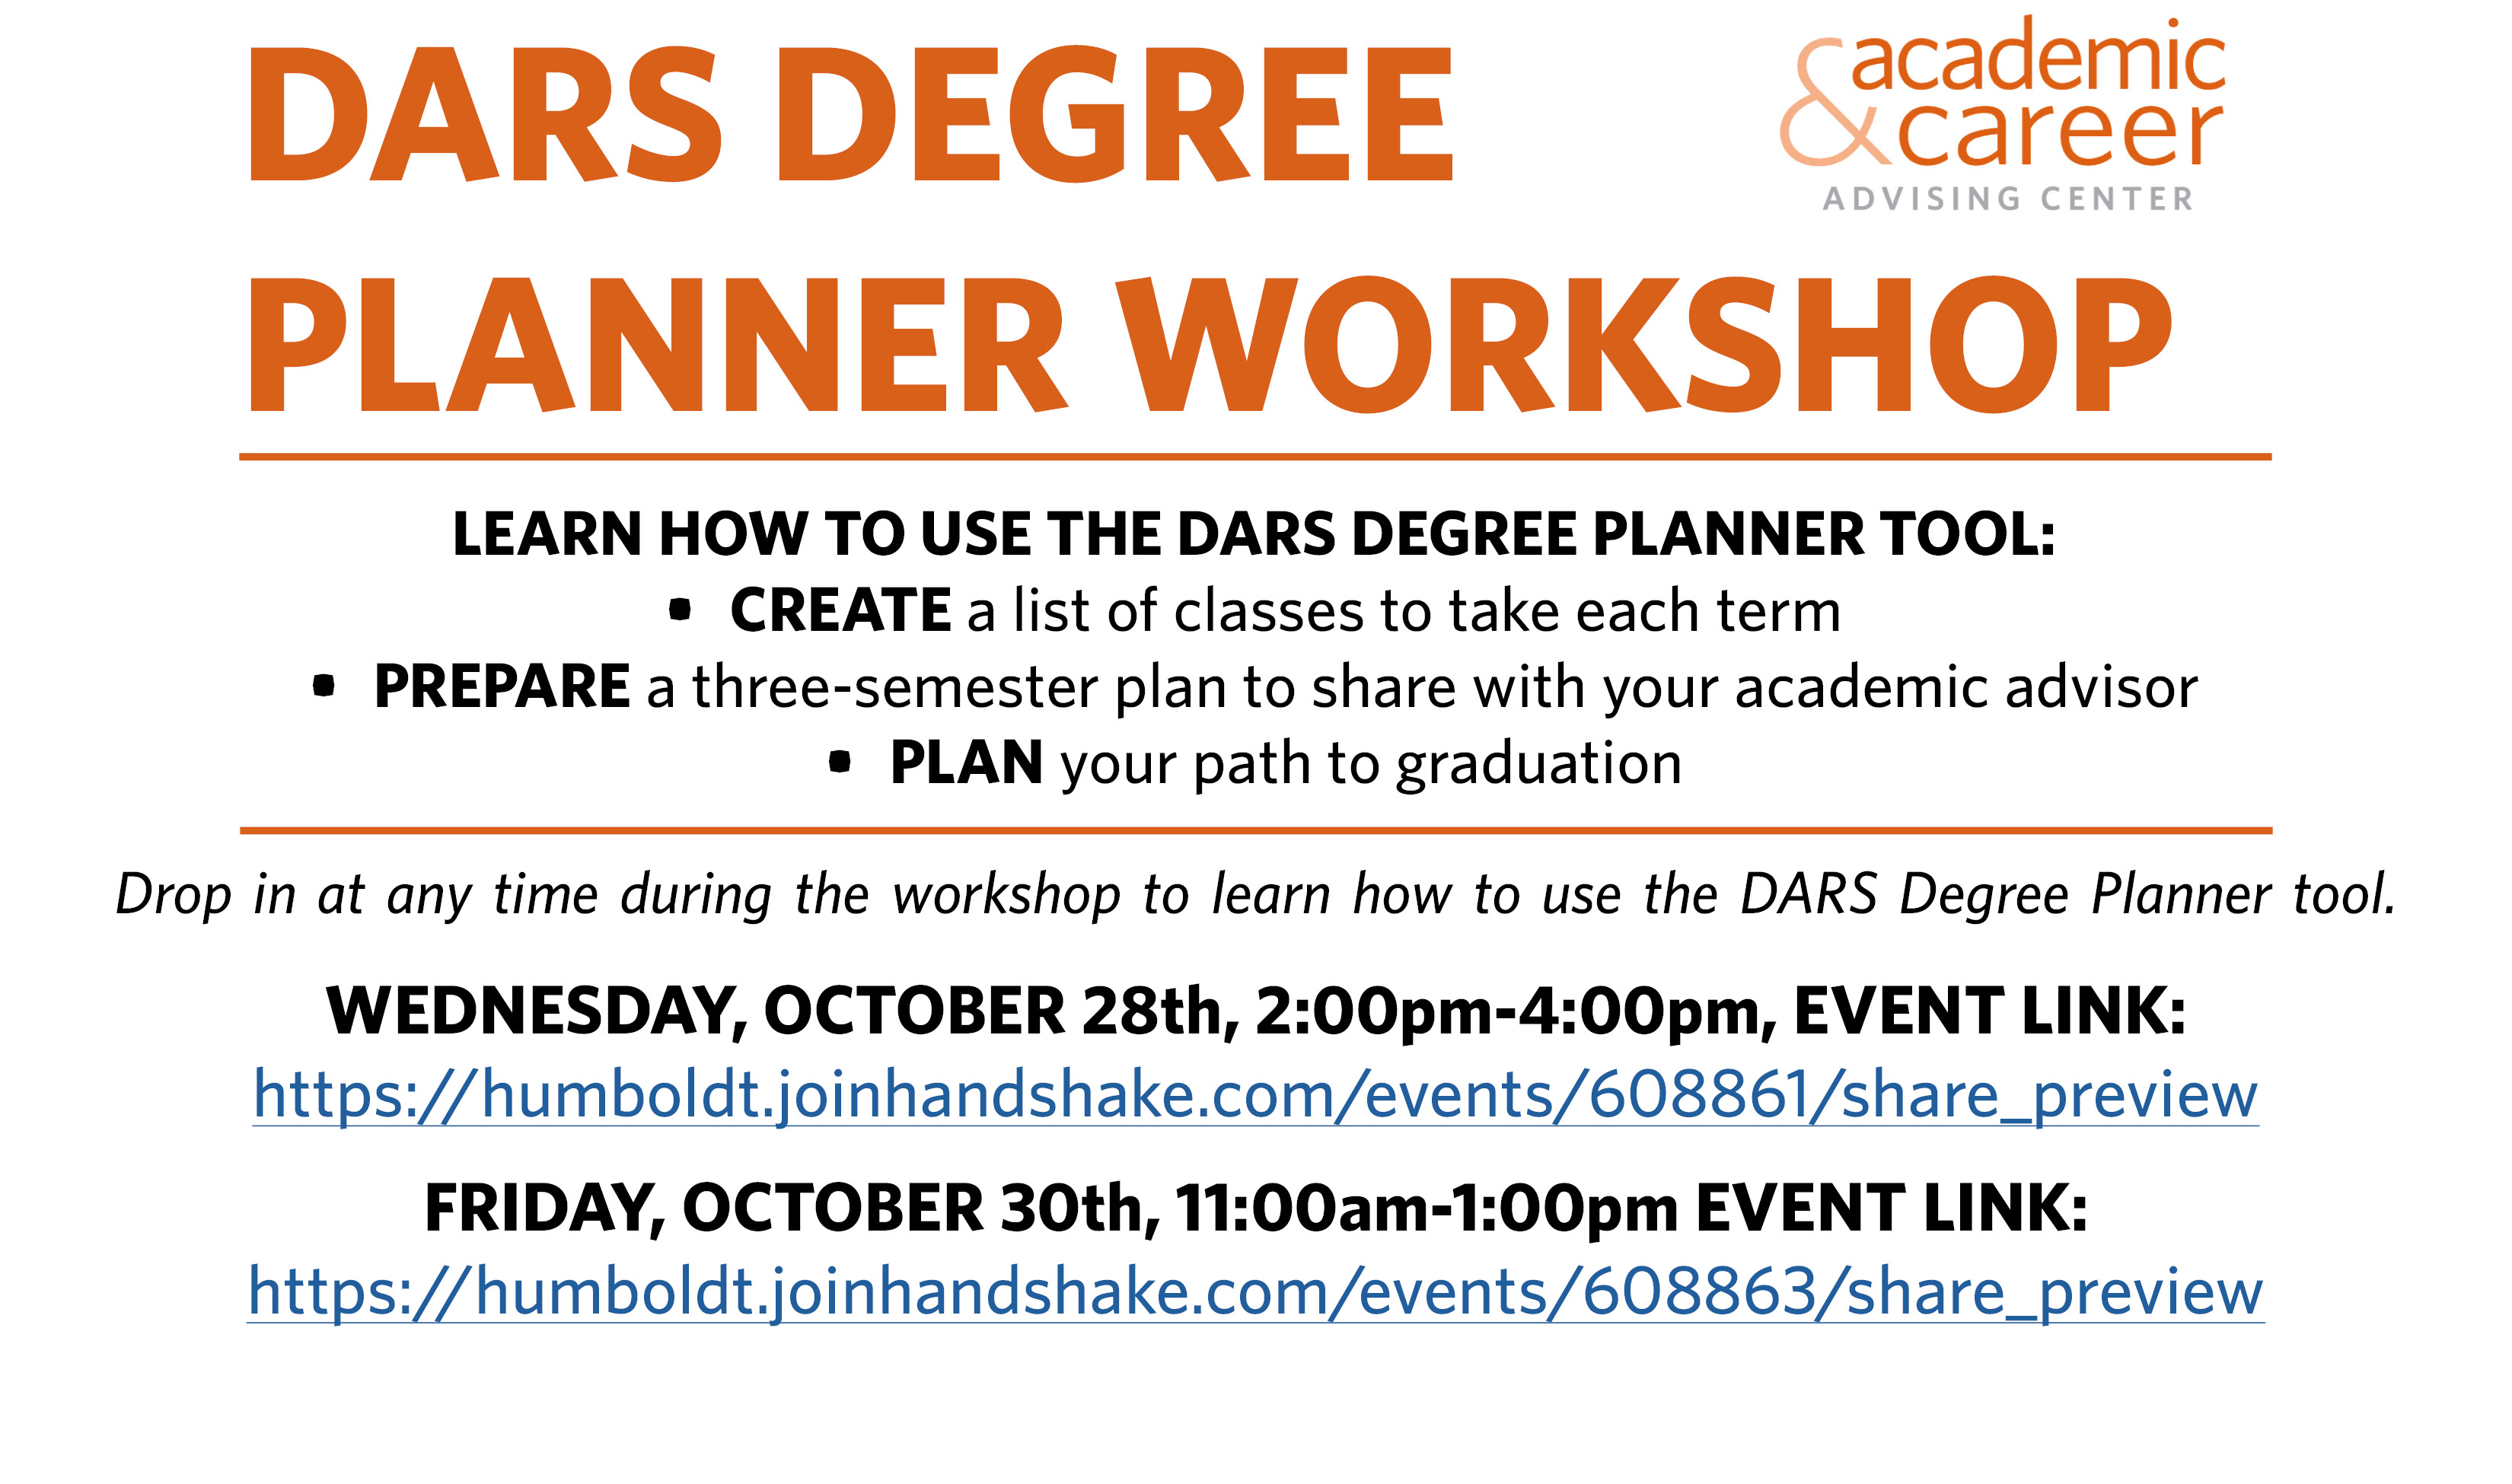 DARS Degree Planner Workshops through Handshake